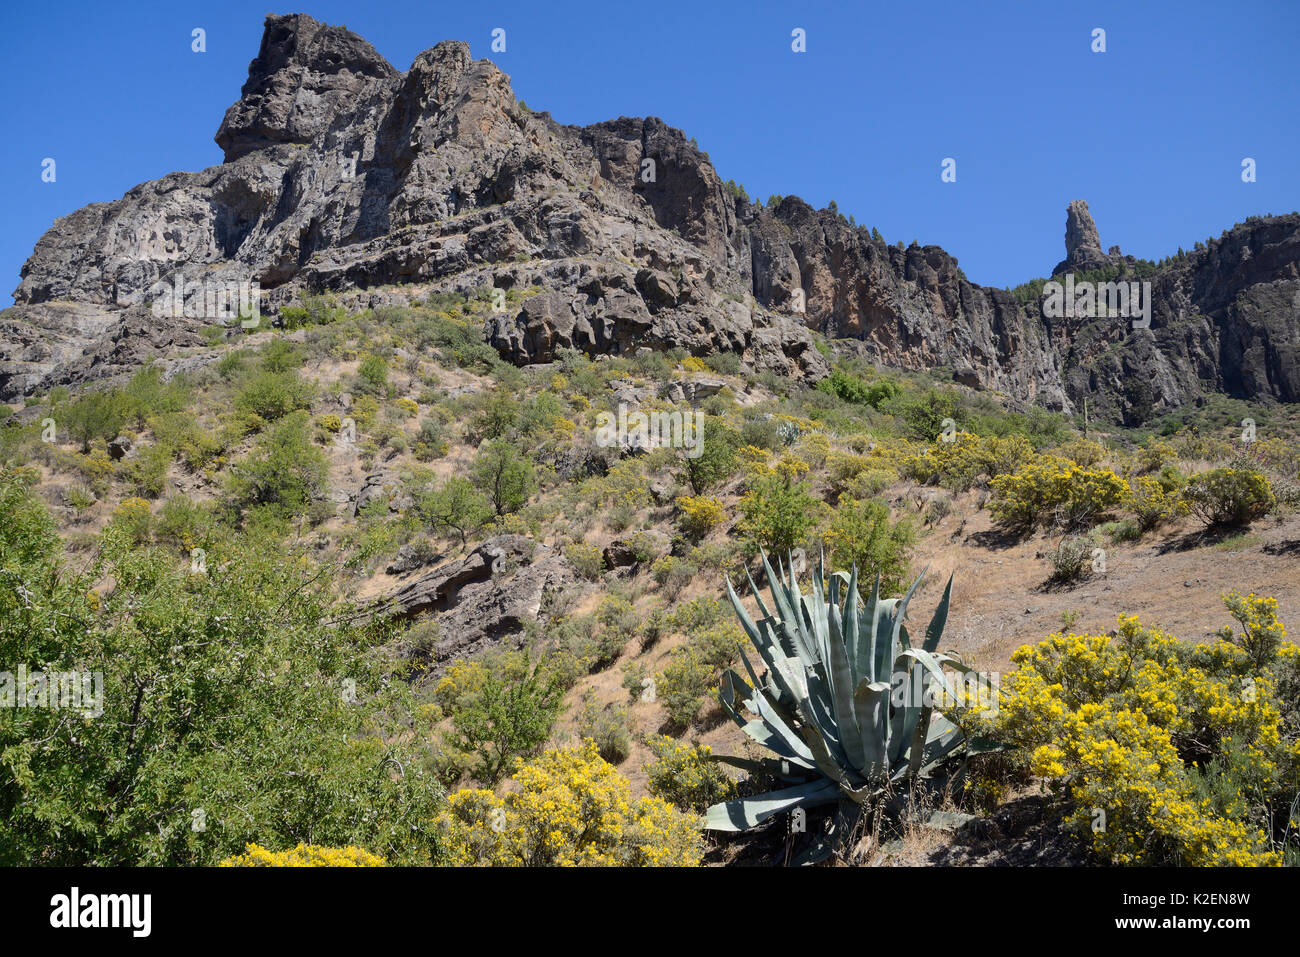 Gran Canaria broom (Teline microphylla) bushes flowering and a Century plant (Agave americana) below Roque Nublo, a volcanic basaltic monolith. Gran Canaria UNESCO Biosphere Reserve, Gran Canaria. Canary Islands., May 2016. - Stock Image